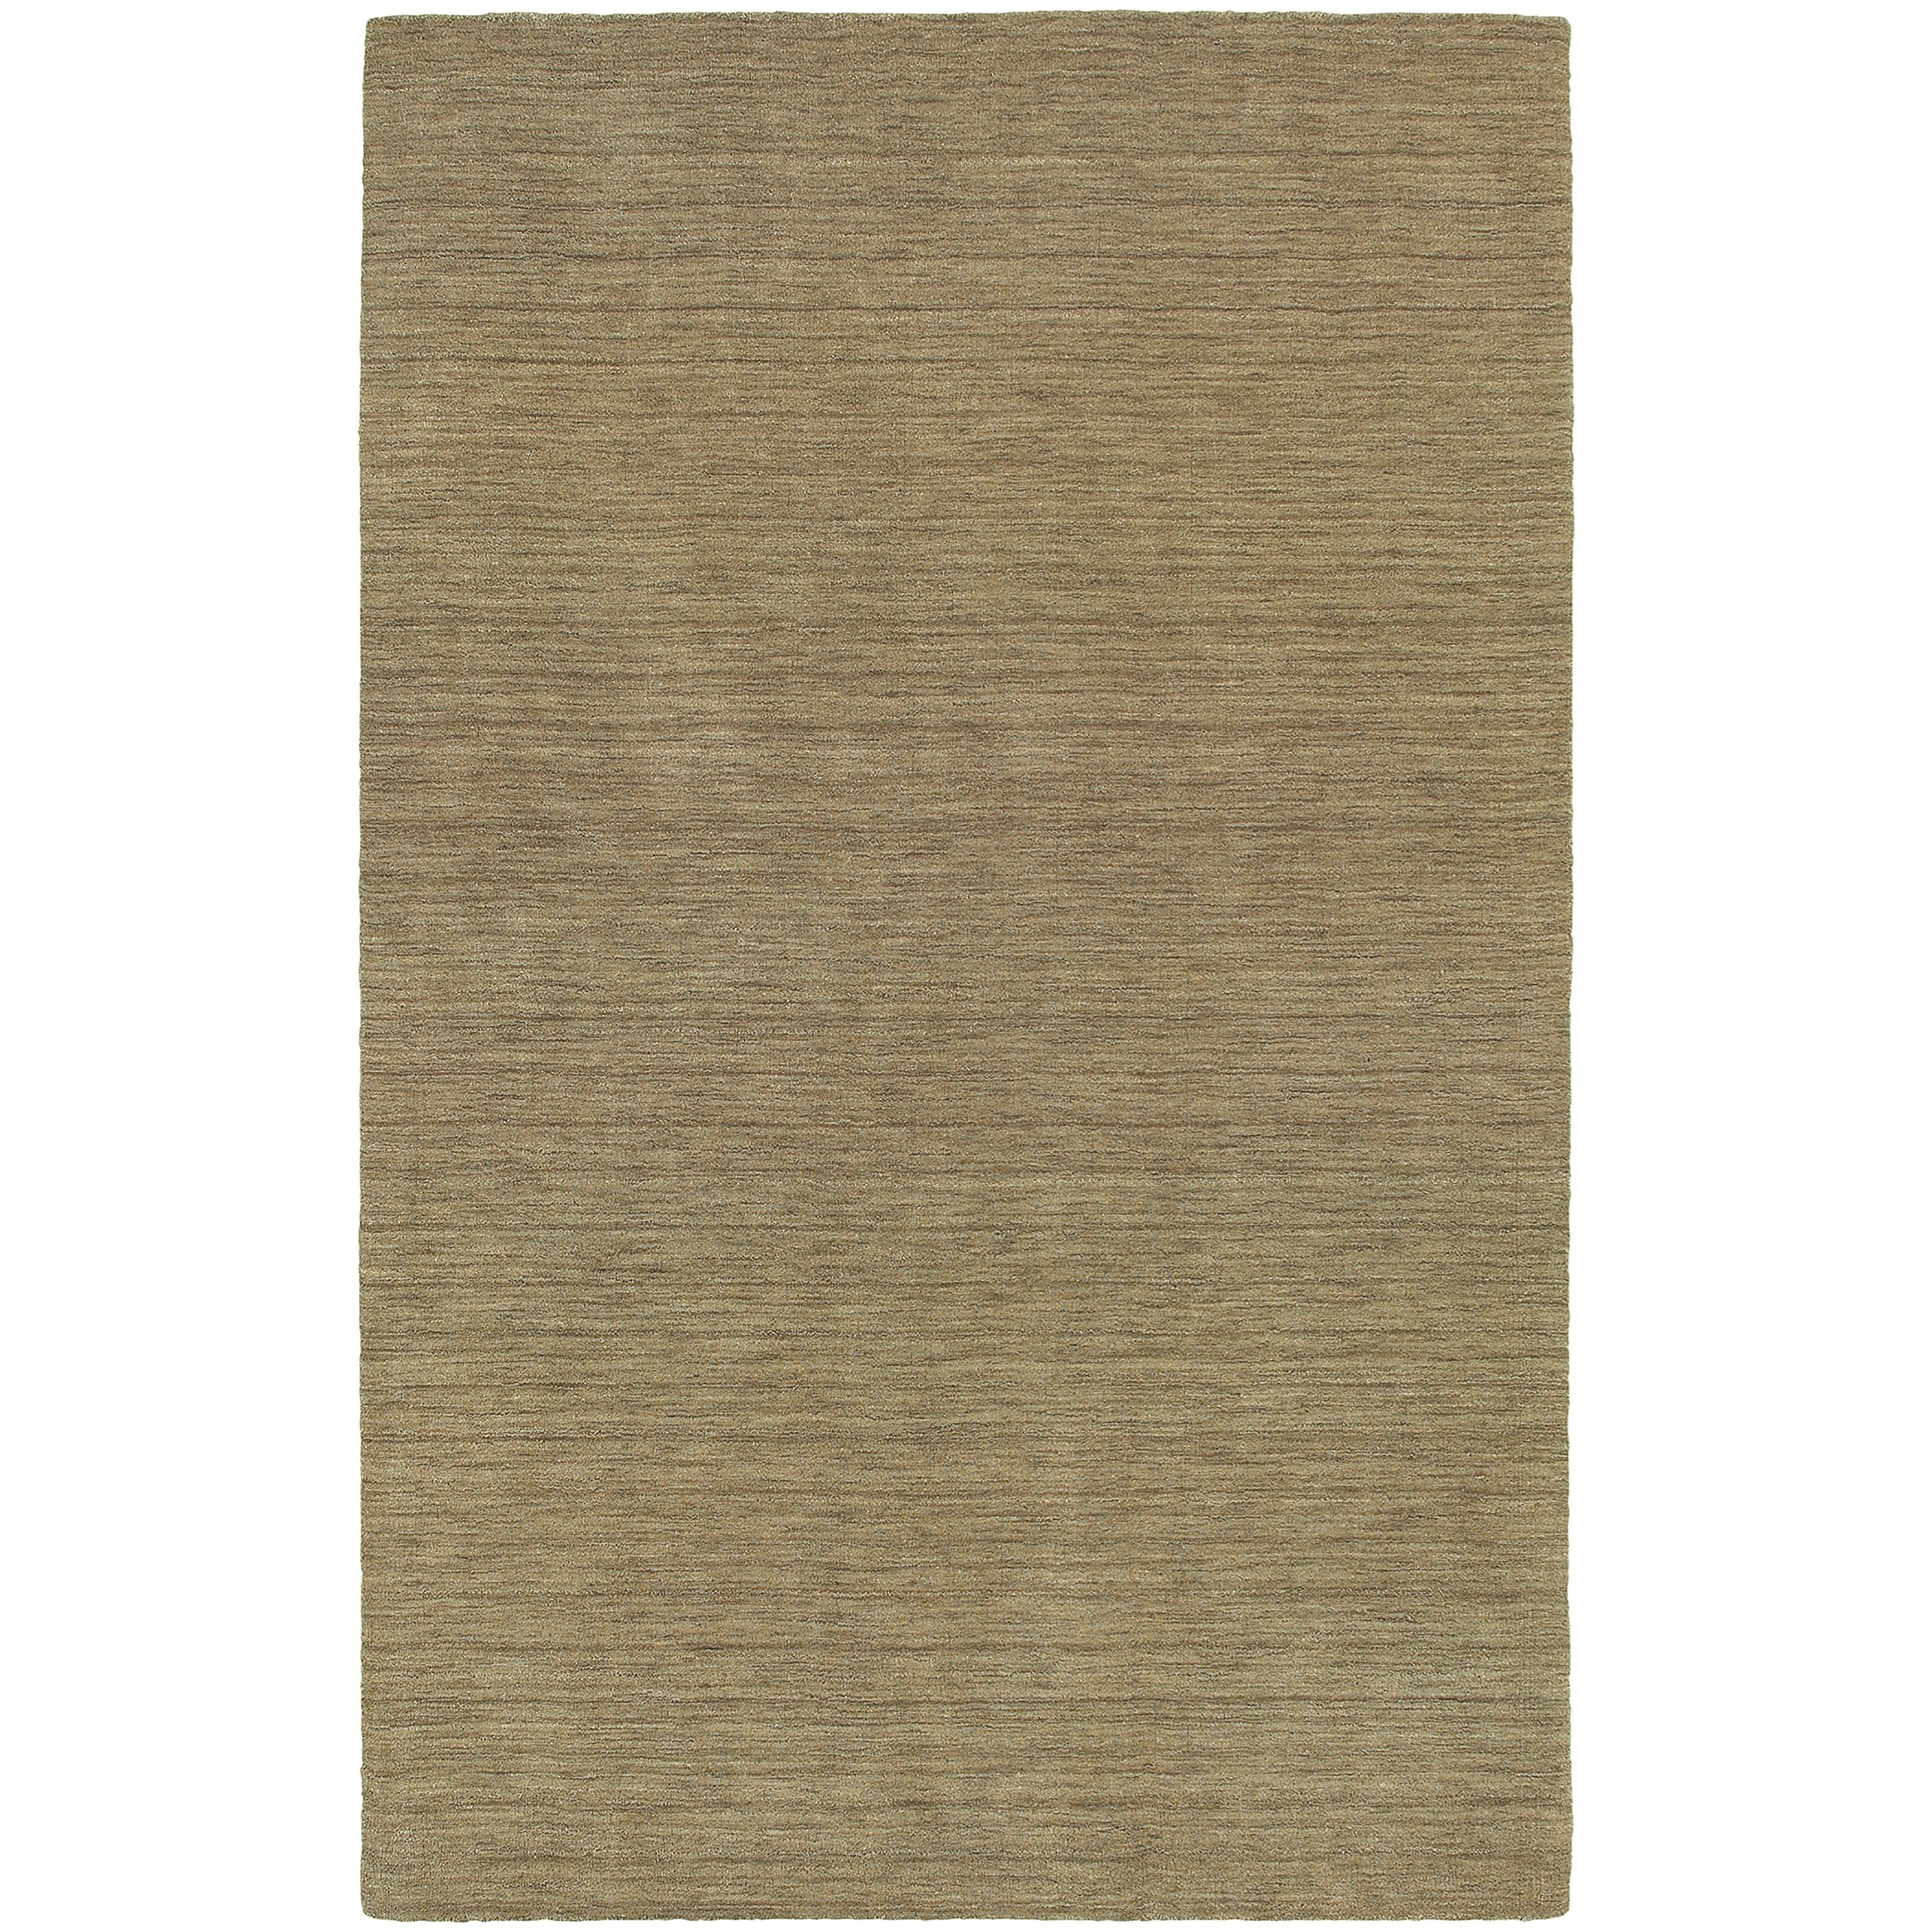 "5' 0"" X  8' 0"" Rectangle Area Rug"